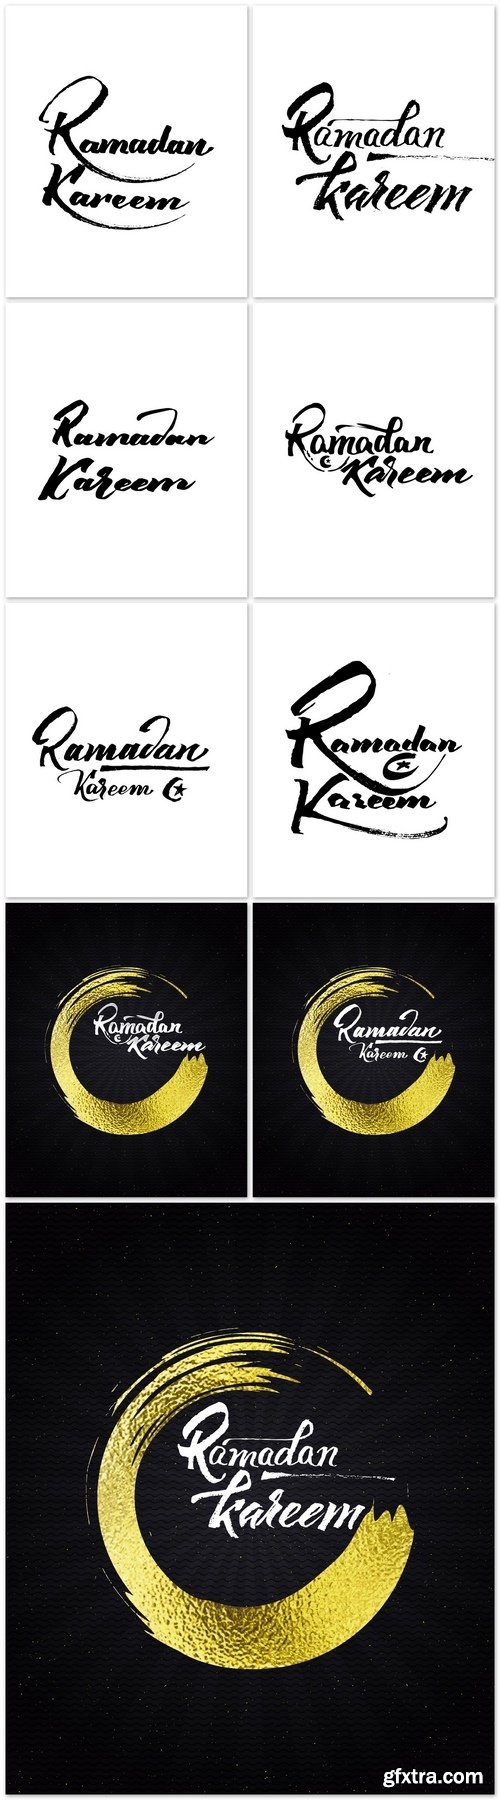 Ramadan Kareem - poster, stamp, badge, insignia, postcard, sticker